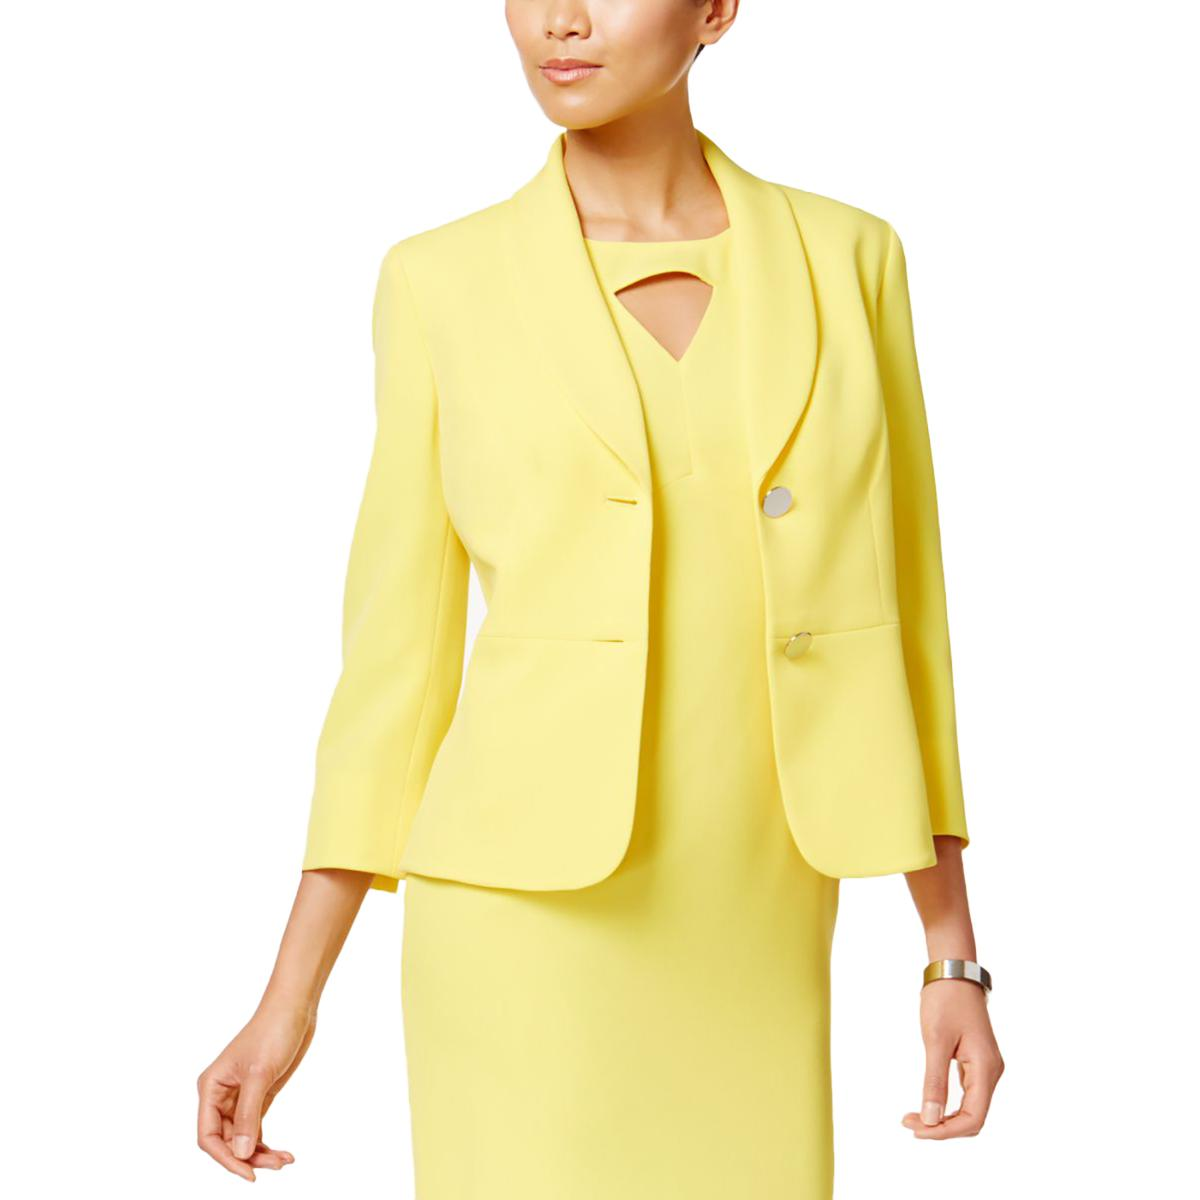 a2d6ad70b37f Details about Kasper Womens Crepe Shawl-Collar 3/4 Sleeves Two-Button Blazer  BHFO 8009